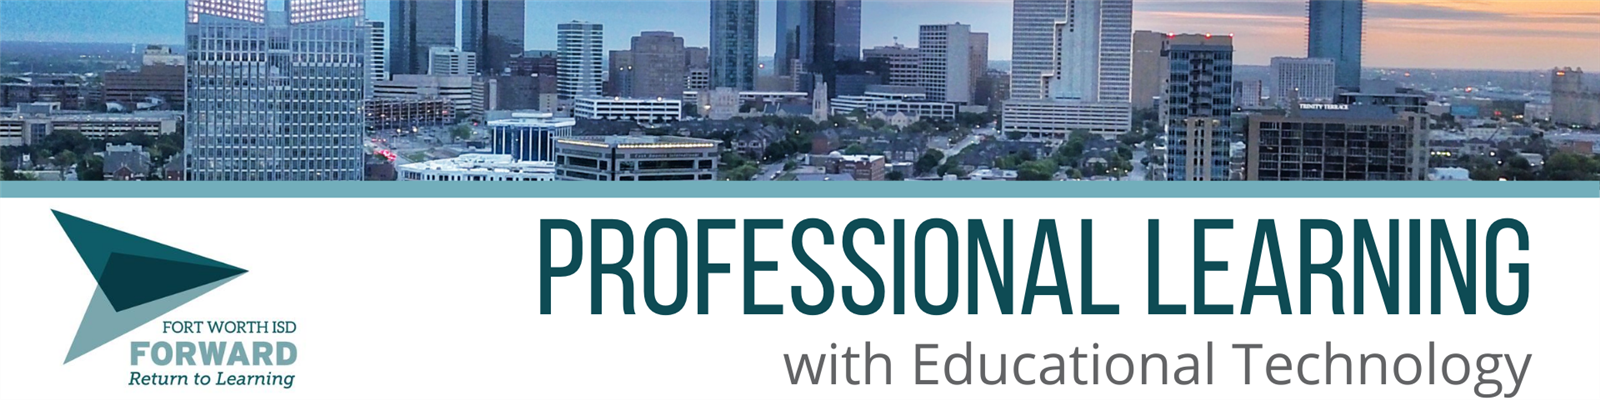 Professional Learning with Educational Technology